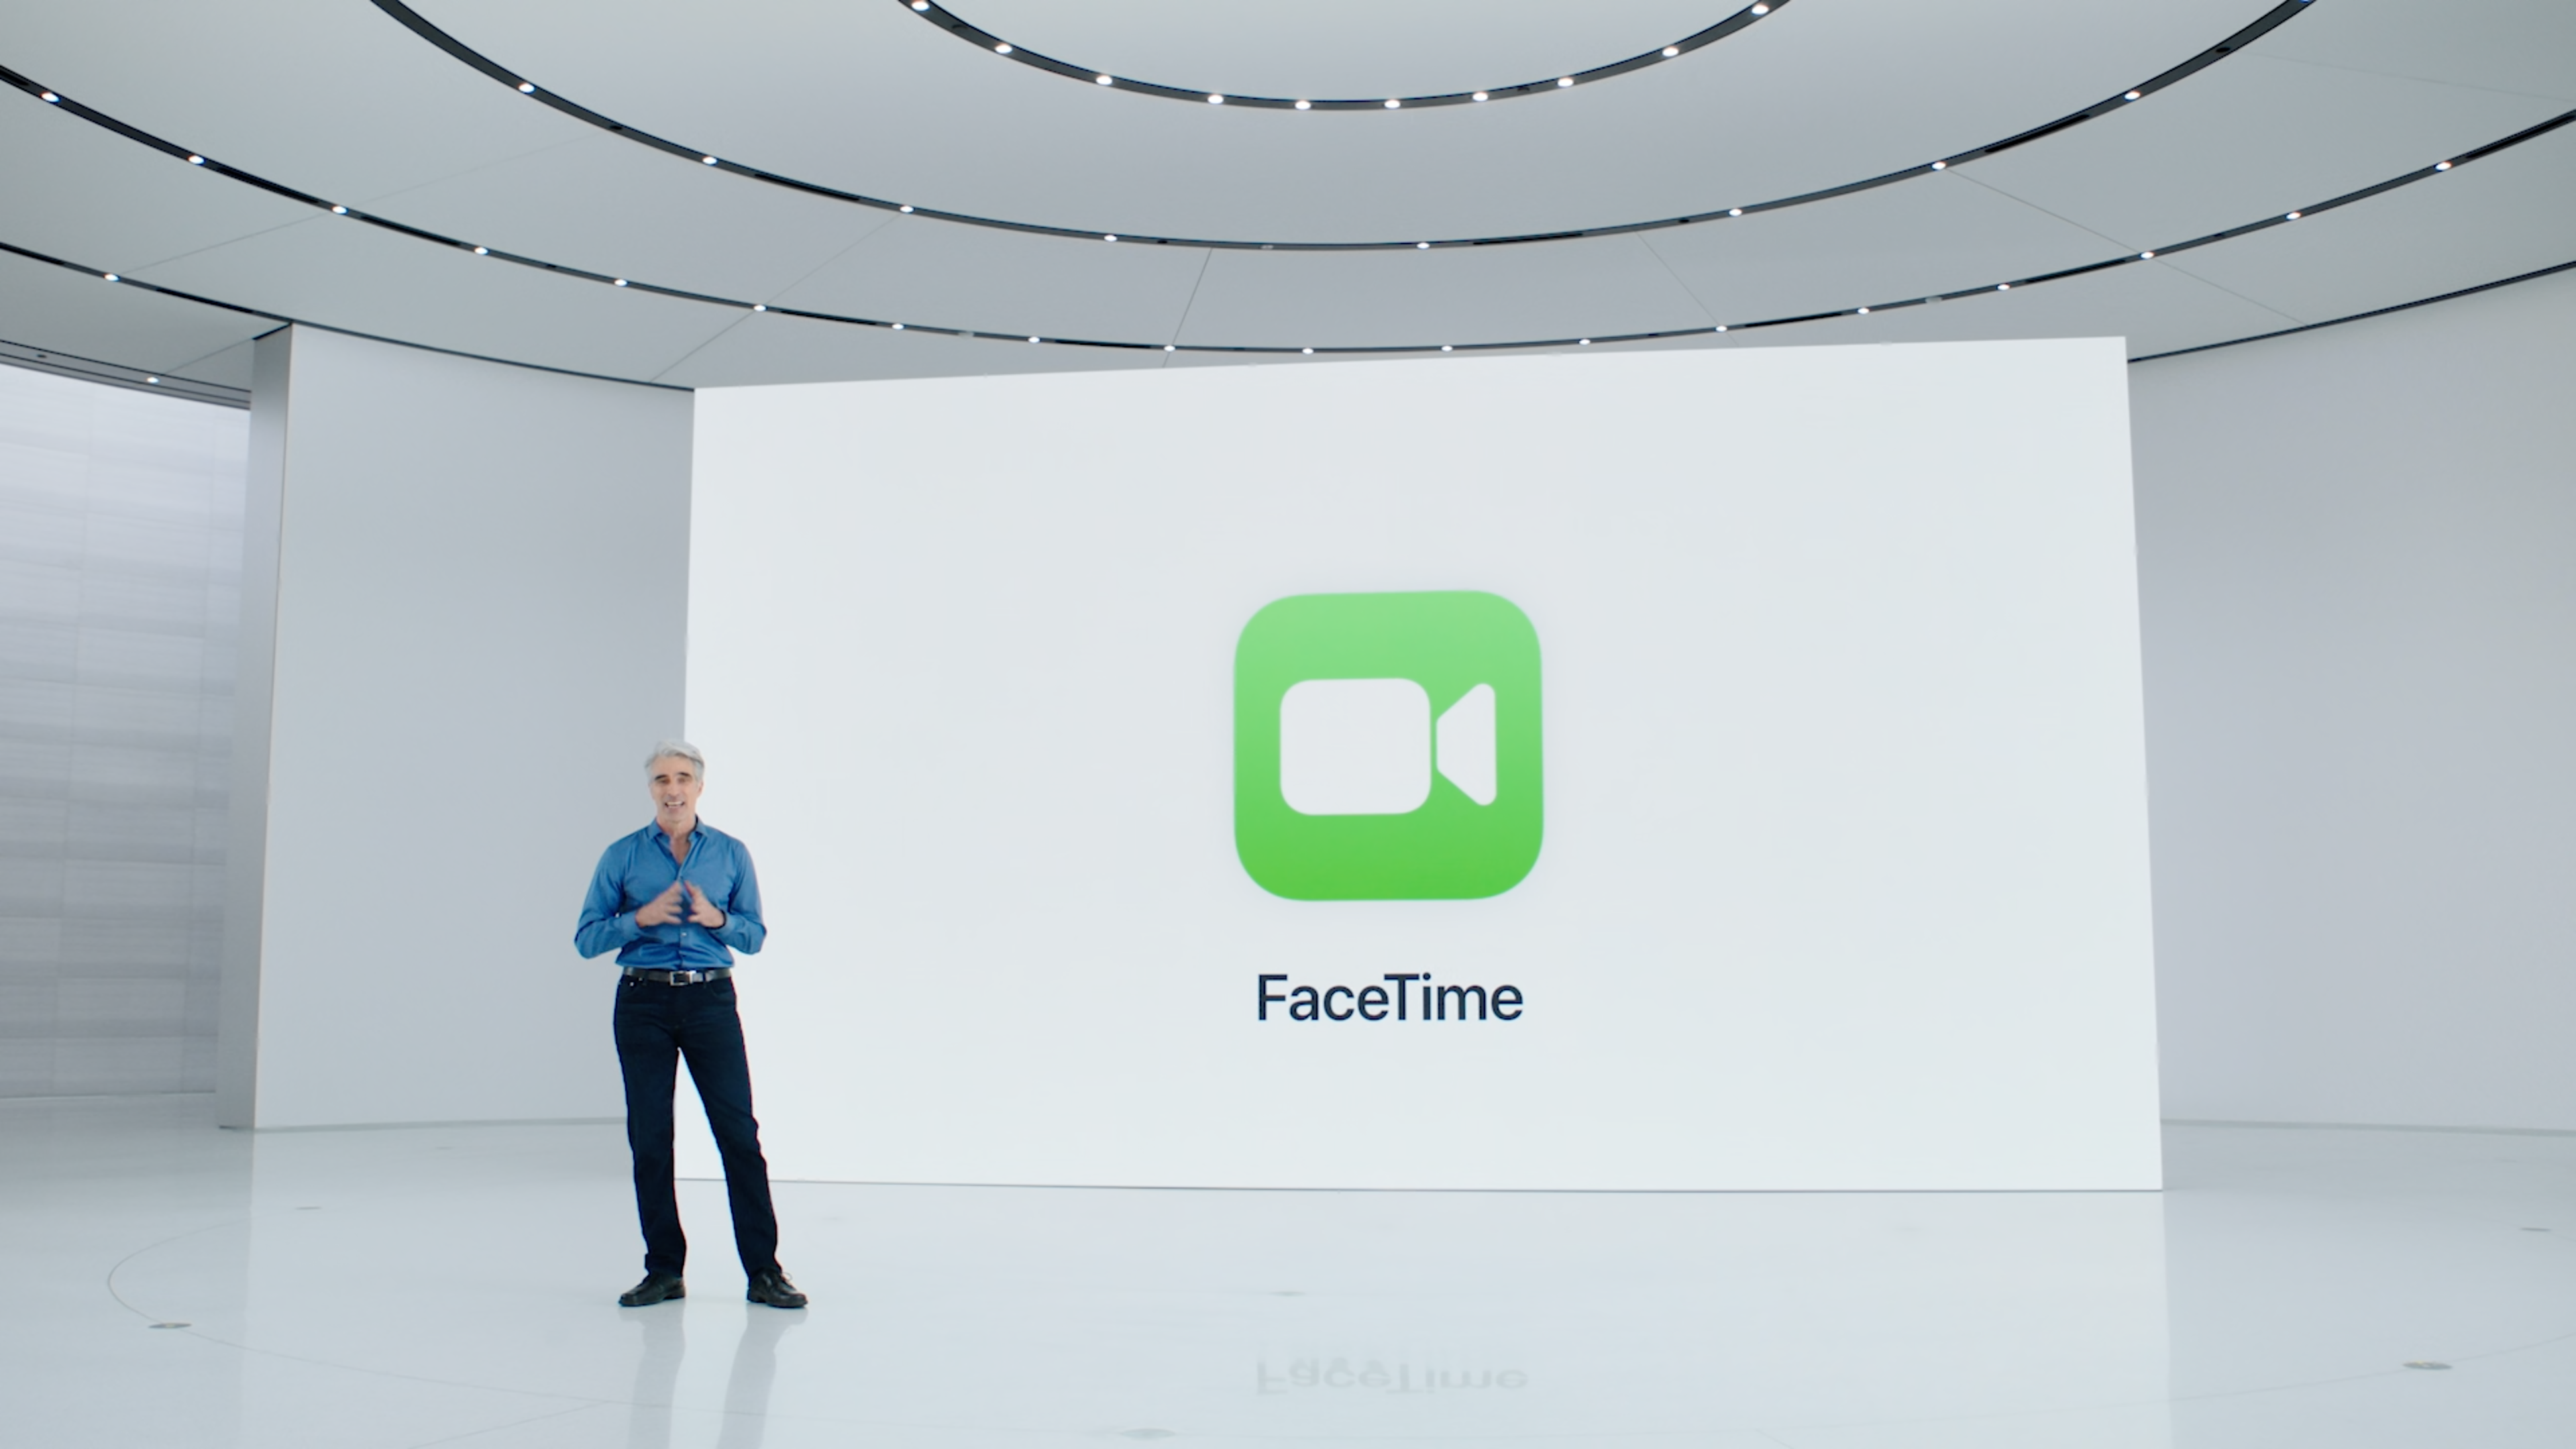 FaceTime's iOS 15 upgrades: Blur backgrounds and schedule calls, just like in Zoom